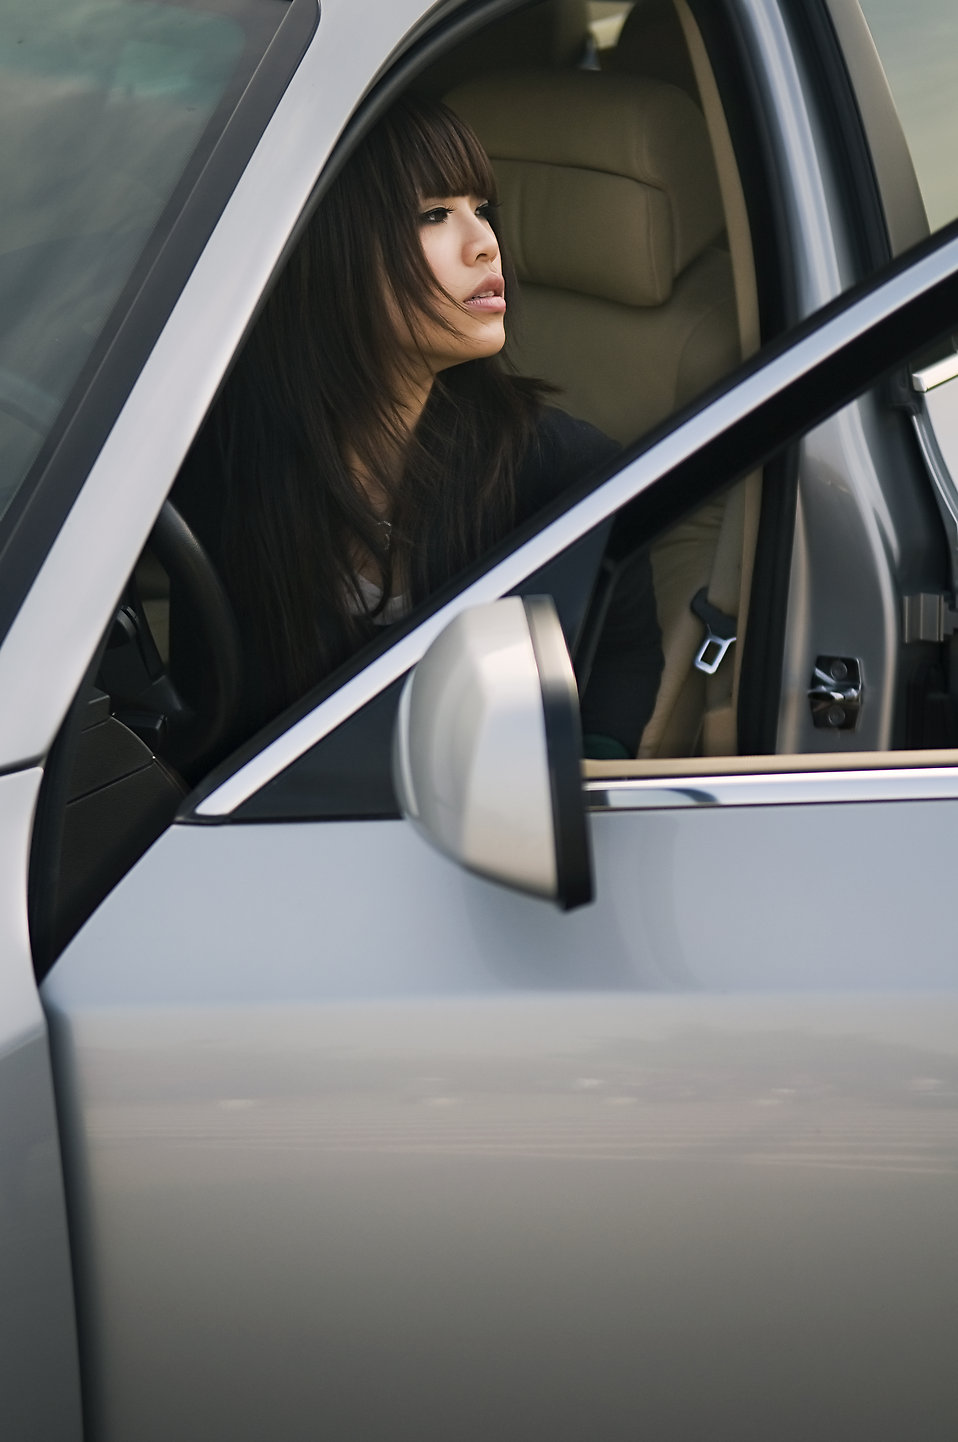 A beautiful Chinese girl getting out of a car : Free Stock Photo